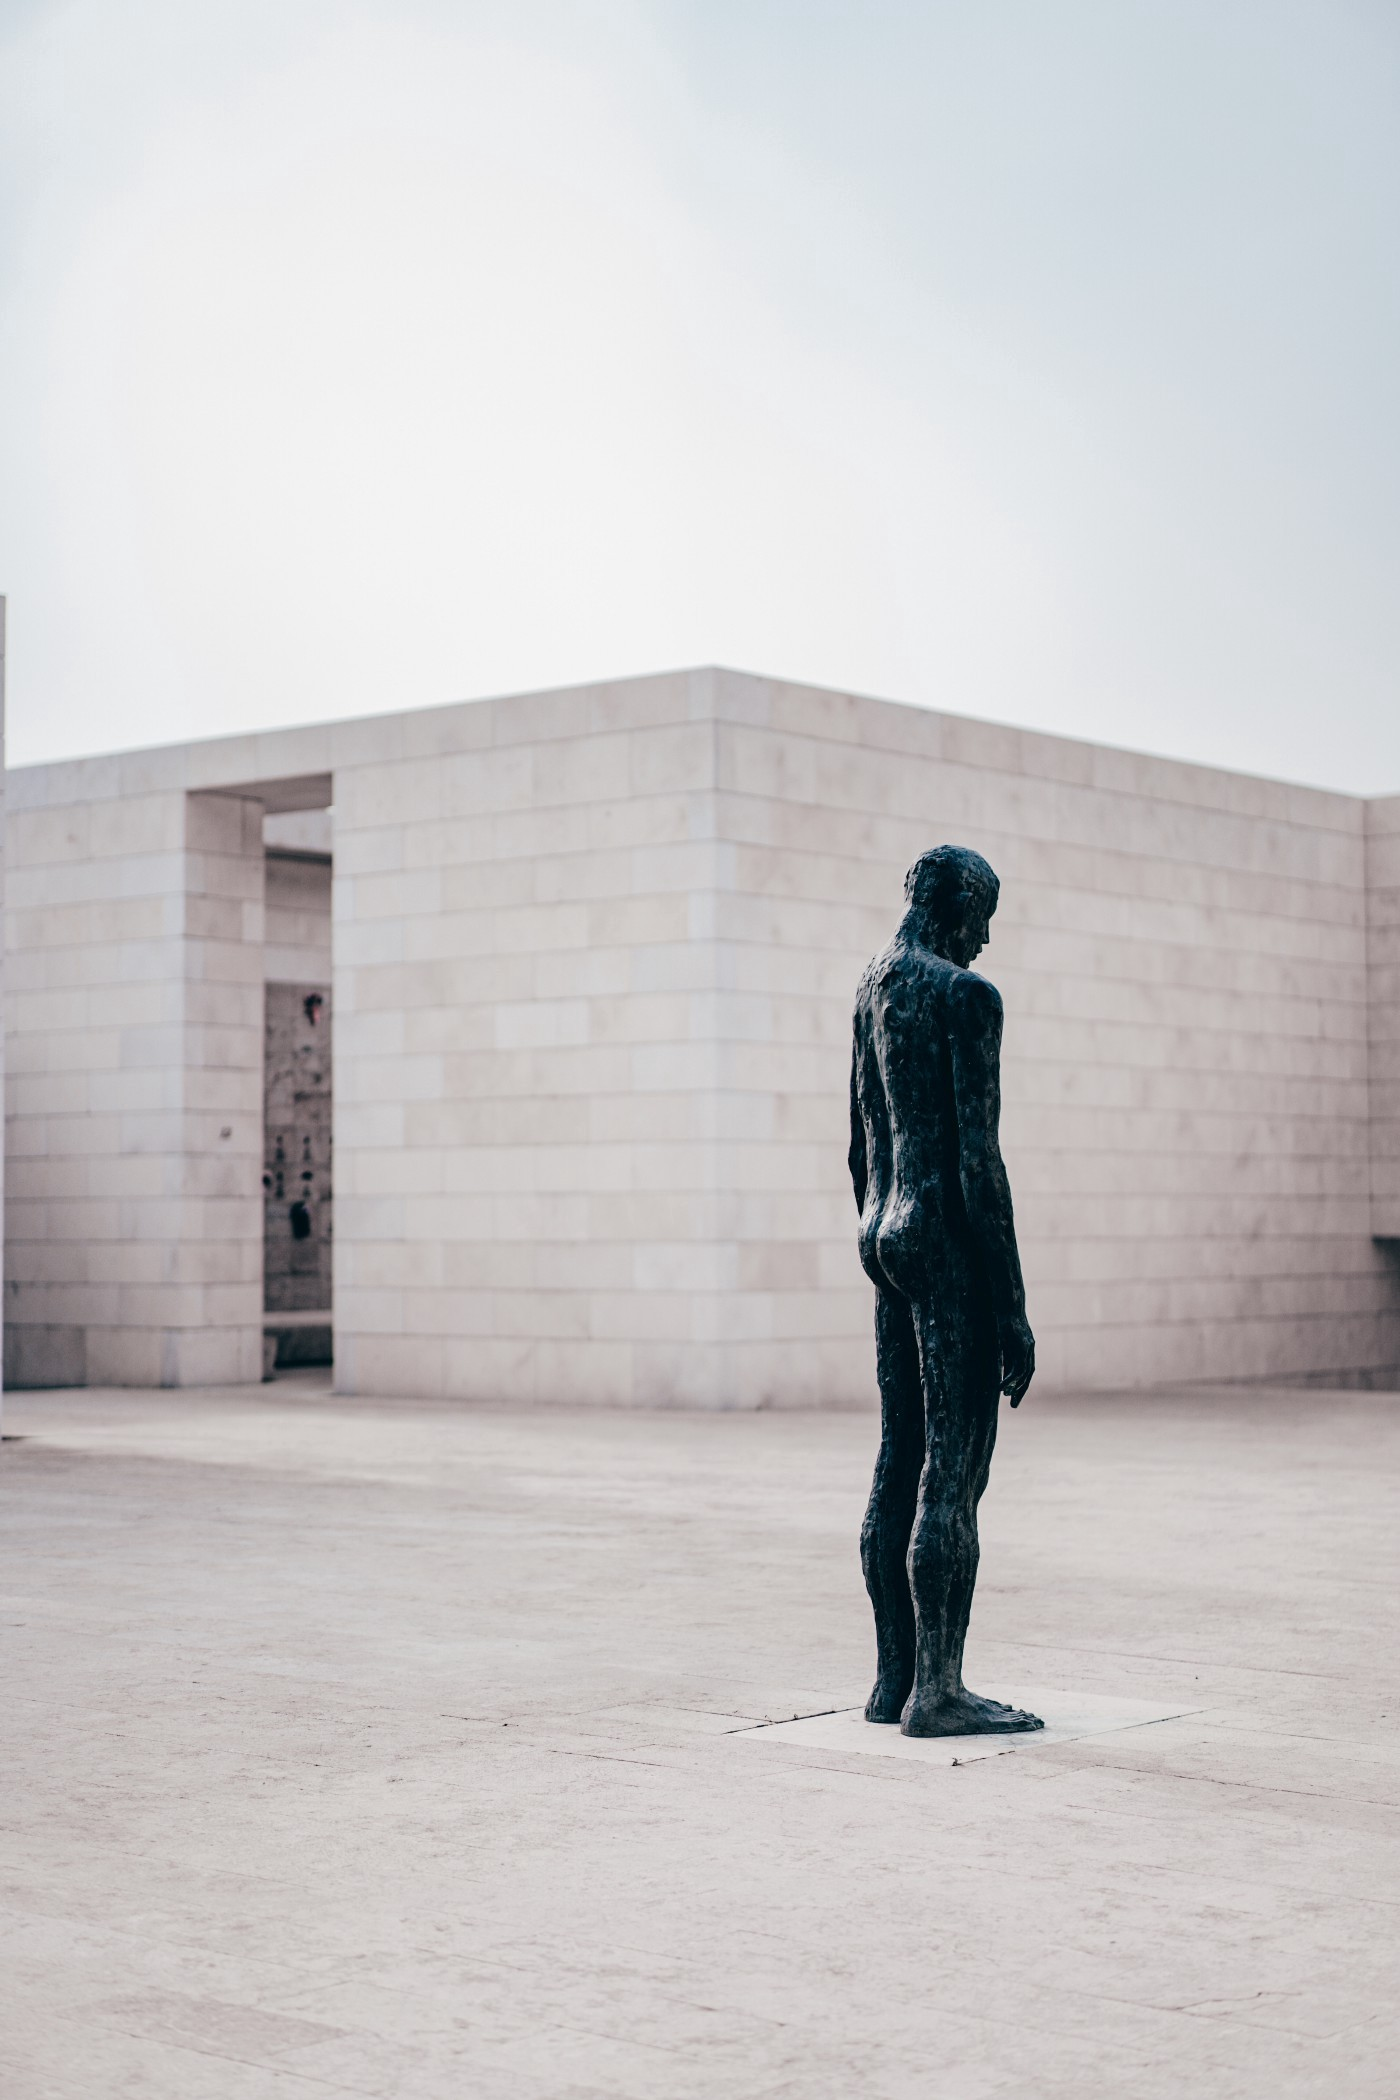 A statue of a human figure stands alone in a courtyard built from stone blocks.